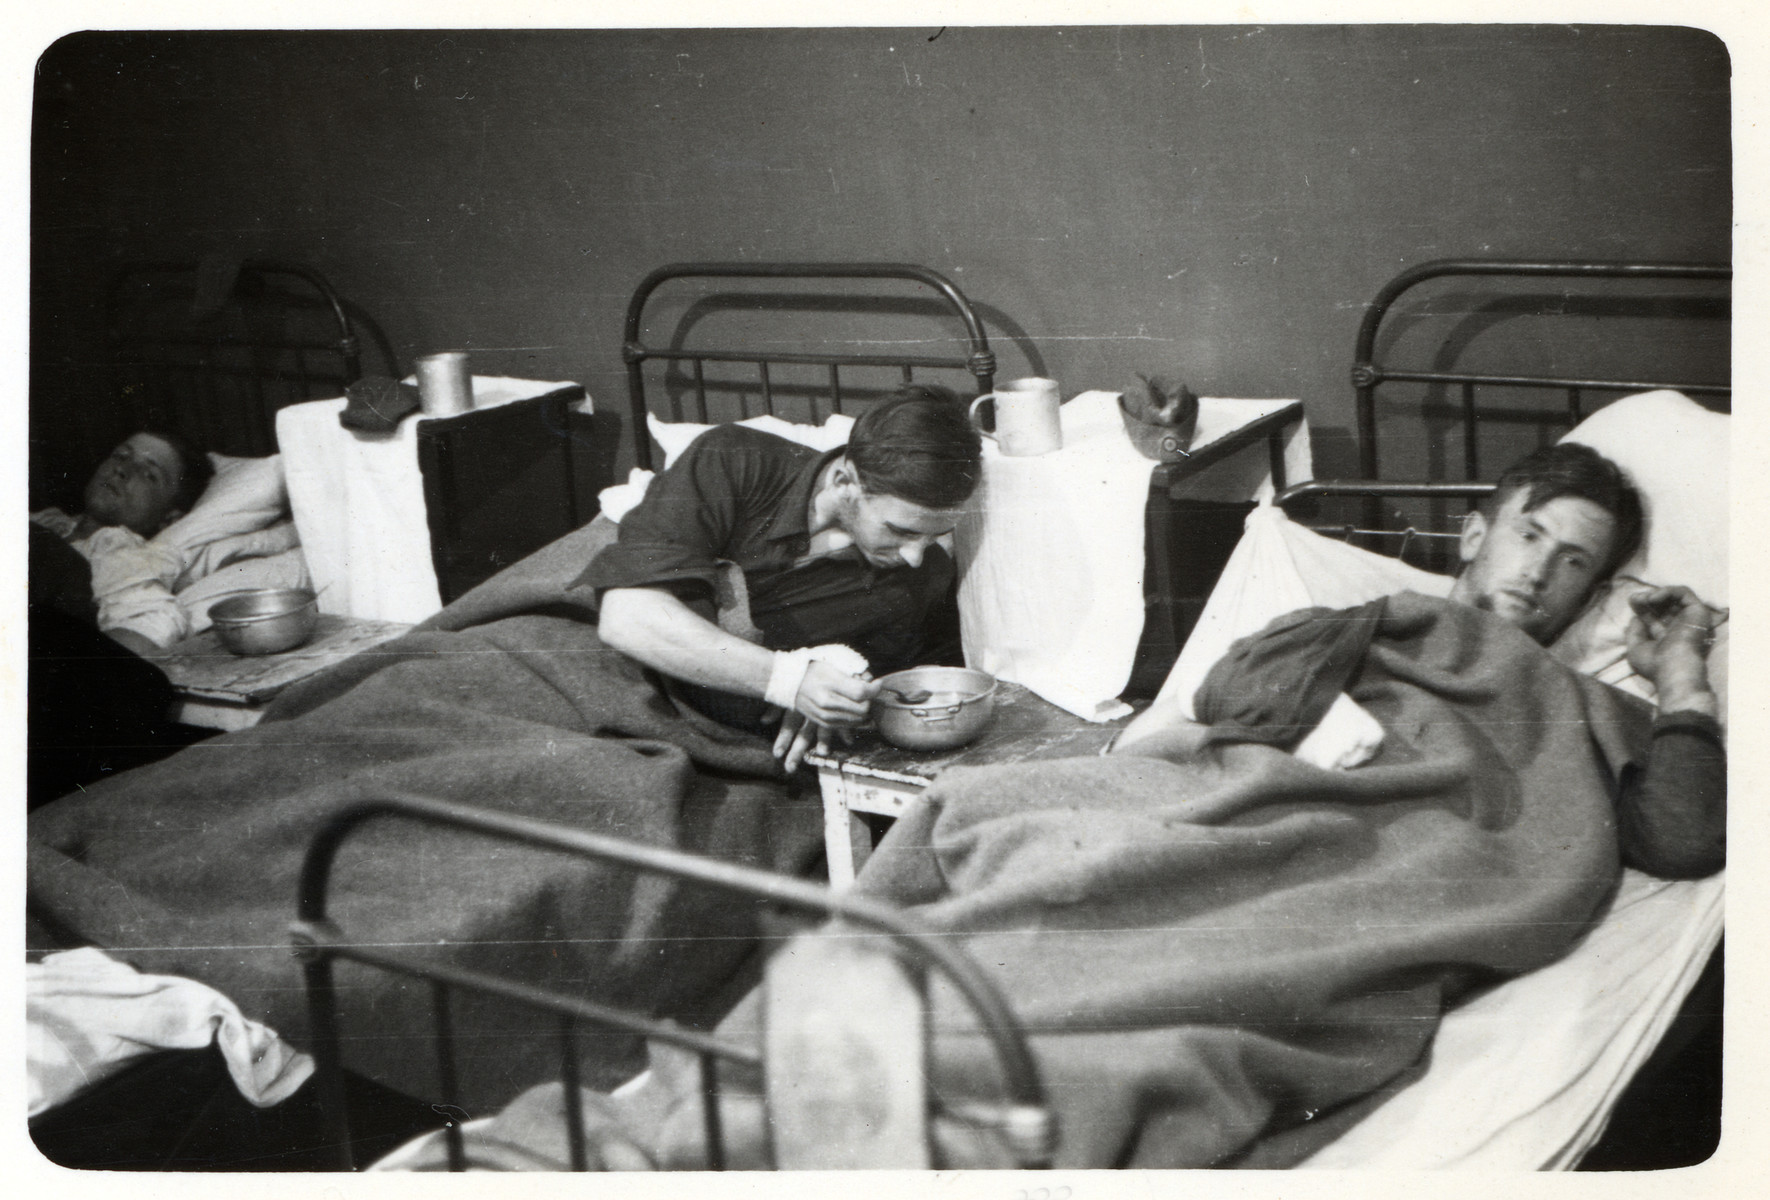 Wounded German POWs rest in a makeshift hospital in besieged Warsaw.